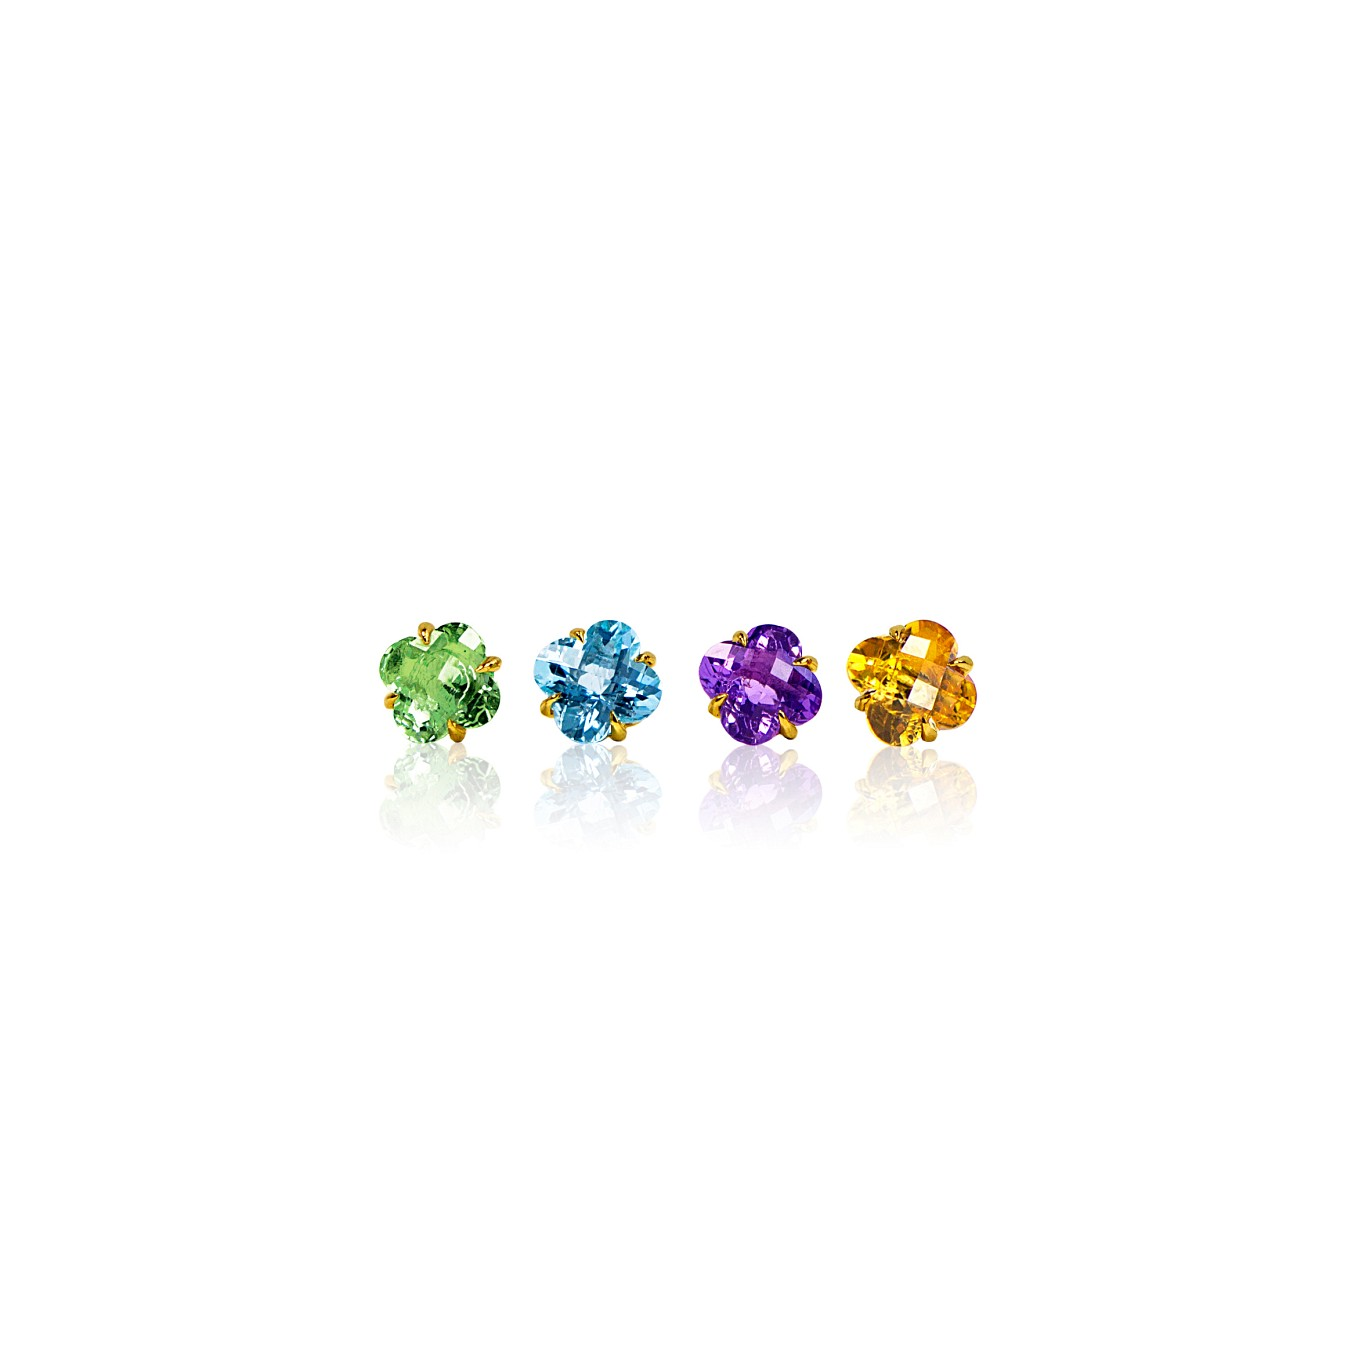 GREEN AMETHYST, BLUE TOPAZ, AMETHYST, & CITRINE CLOVER STUDS IN YELLOW GOLD